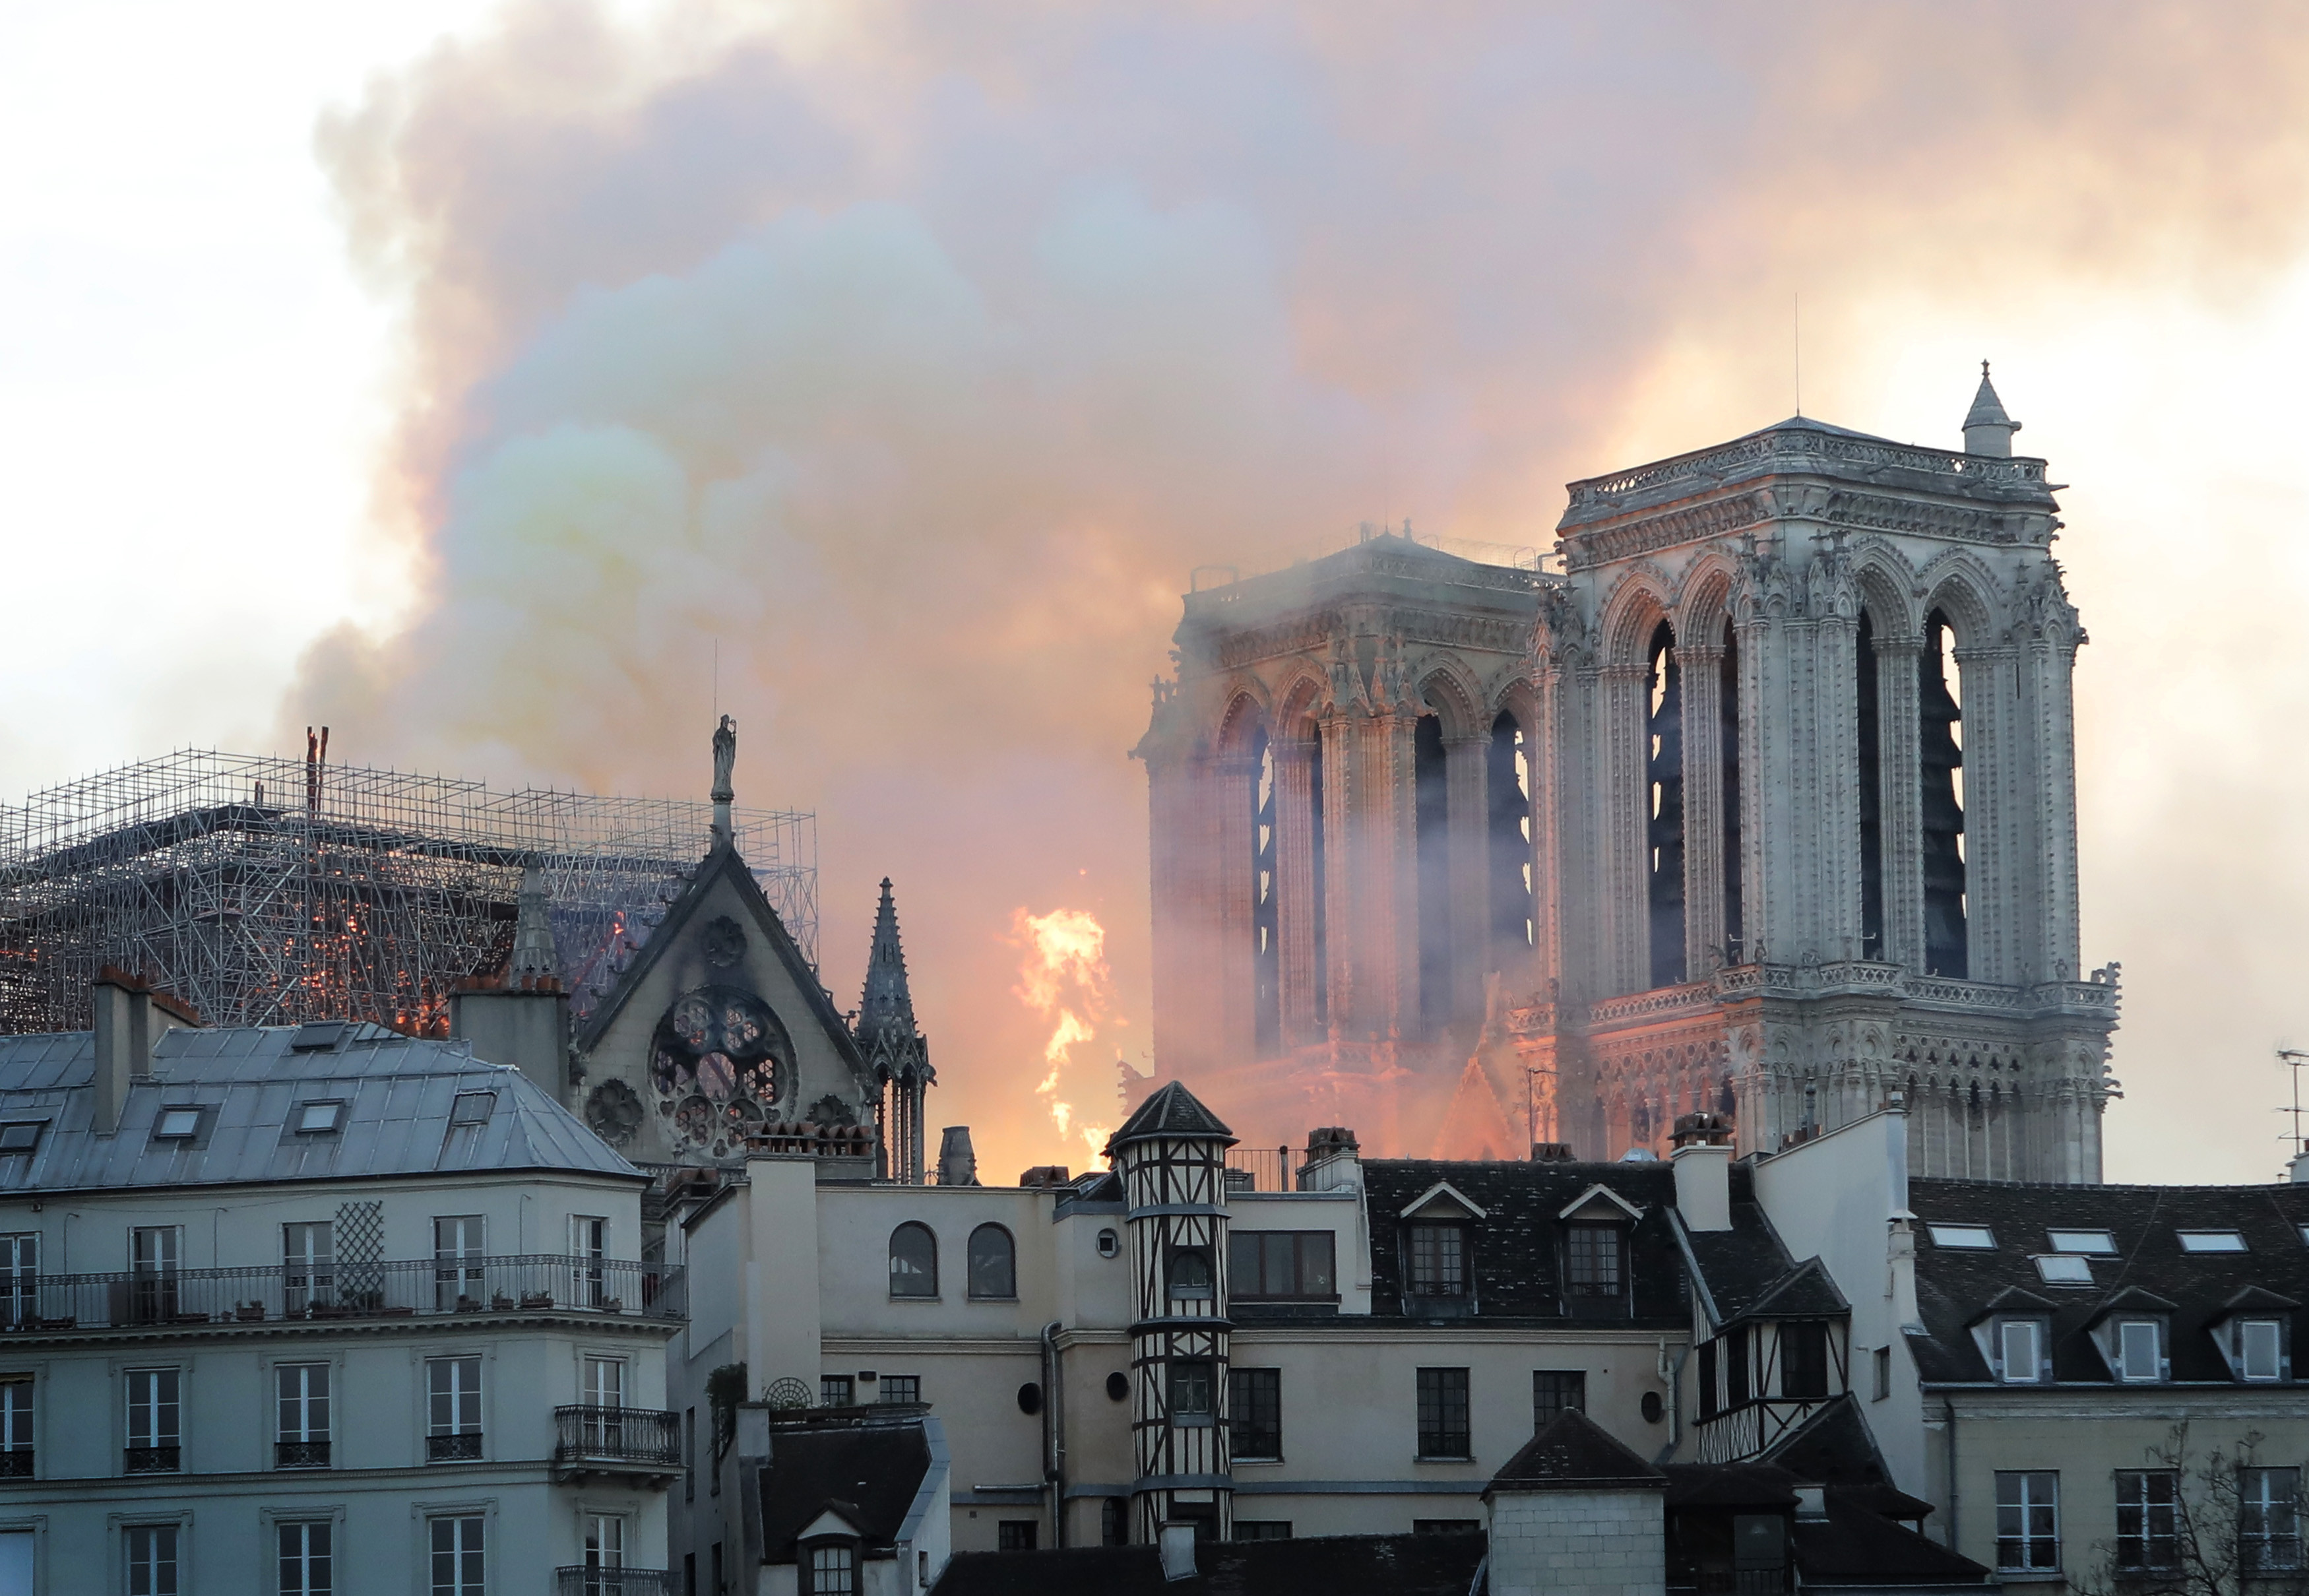 PM Orbán Expresses Sympathies Over Notre Dame Fire